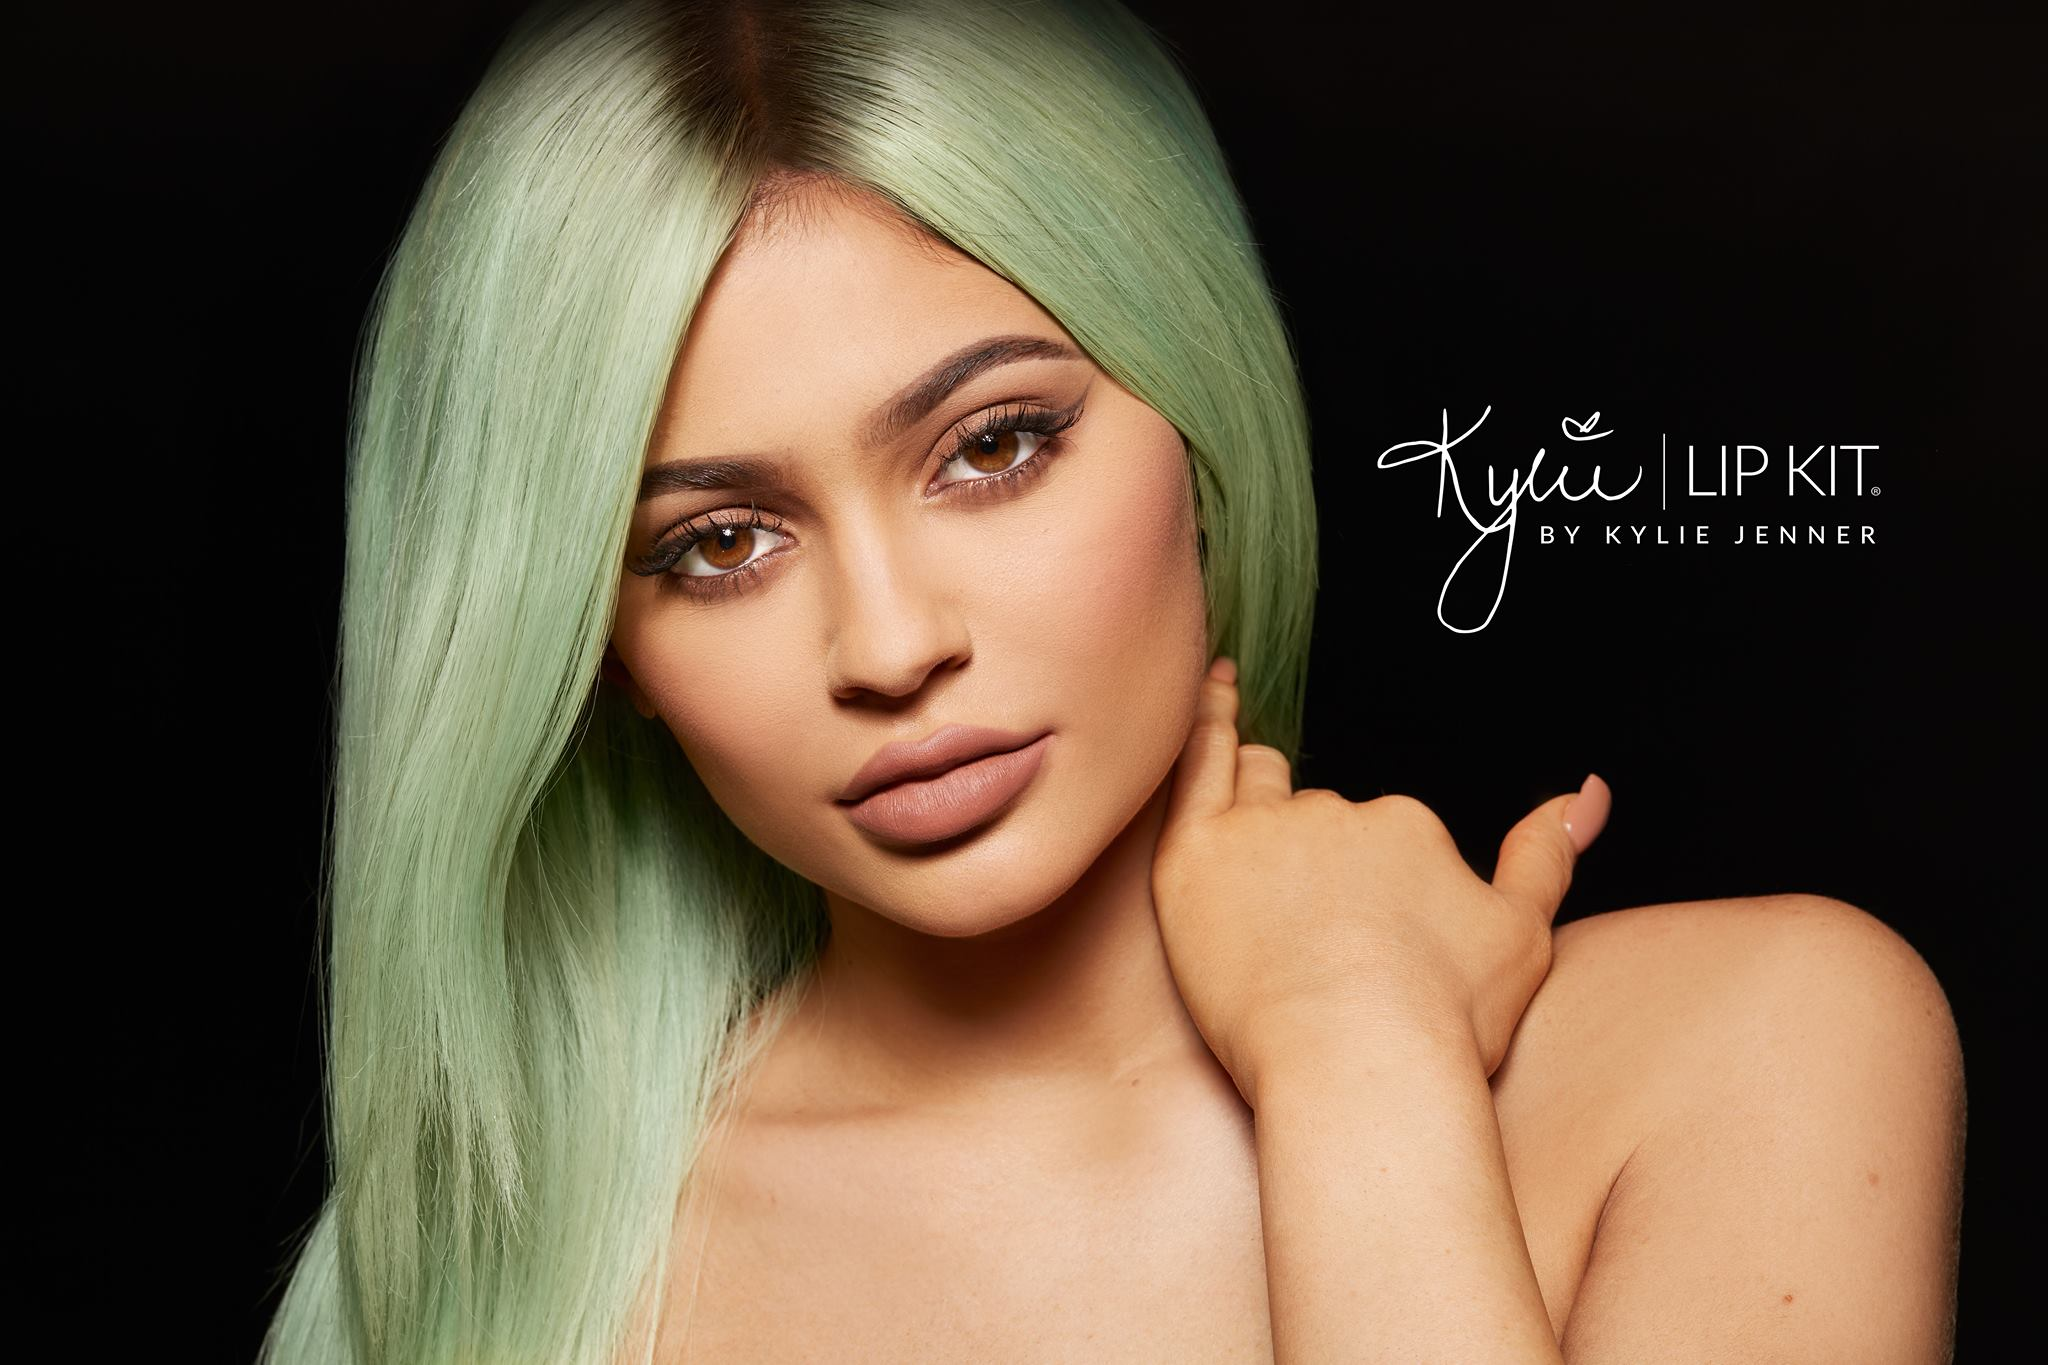 LIPS ARE SEALED // Kylie Jenner has warned against followers buying fake lip kits as they contain harmful products like glue and have been sticking people's lips together.